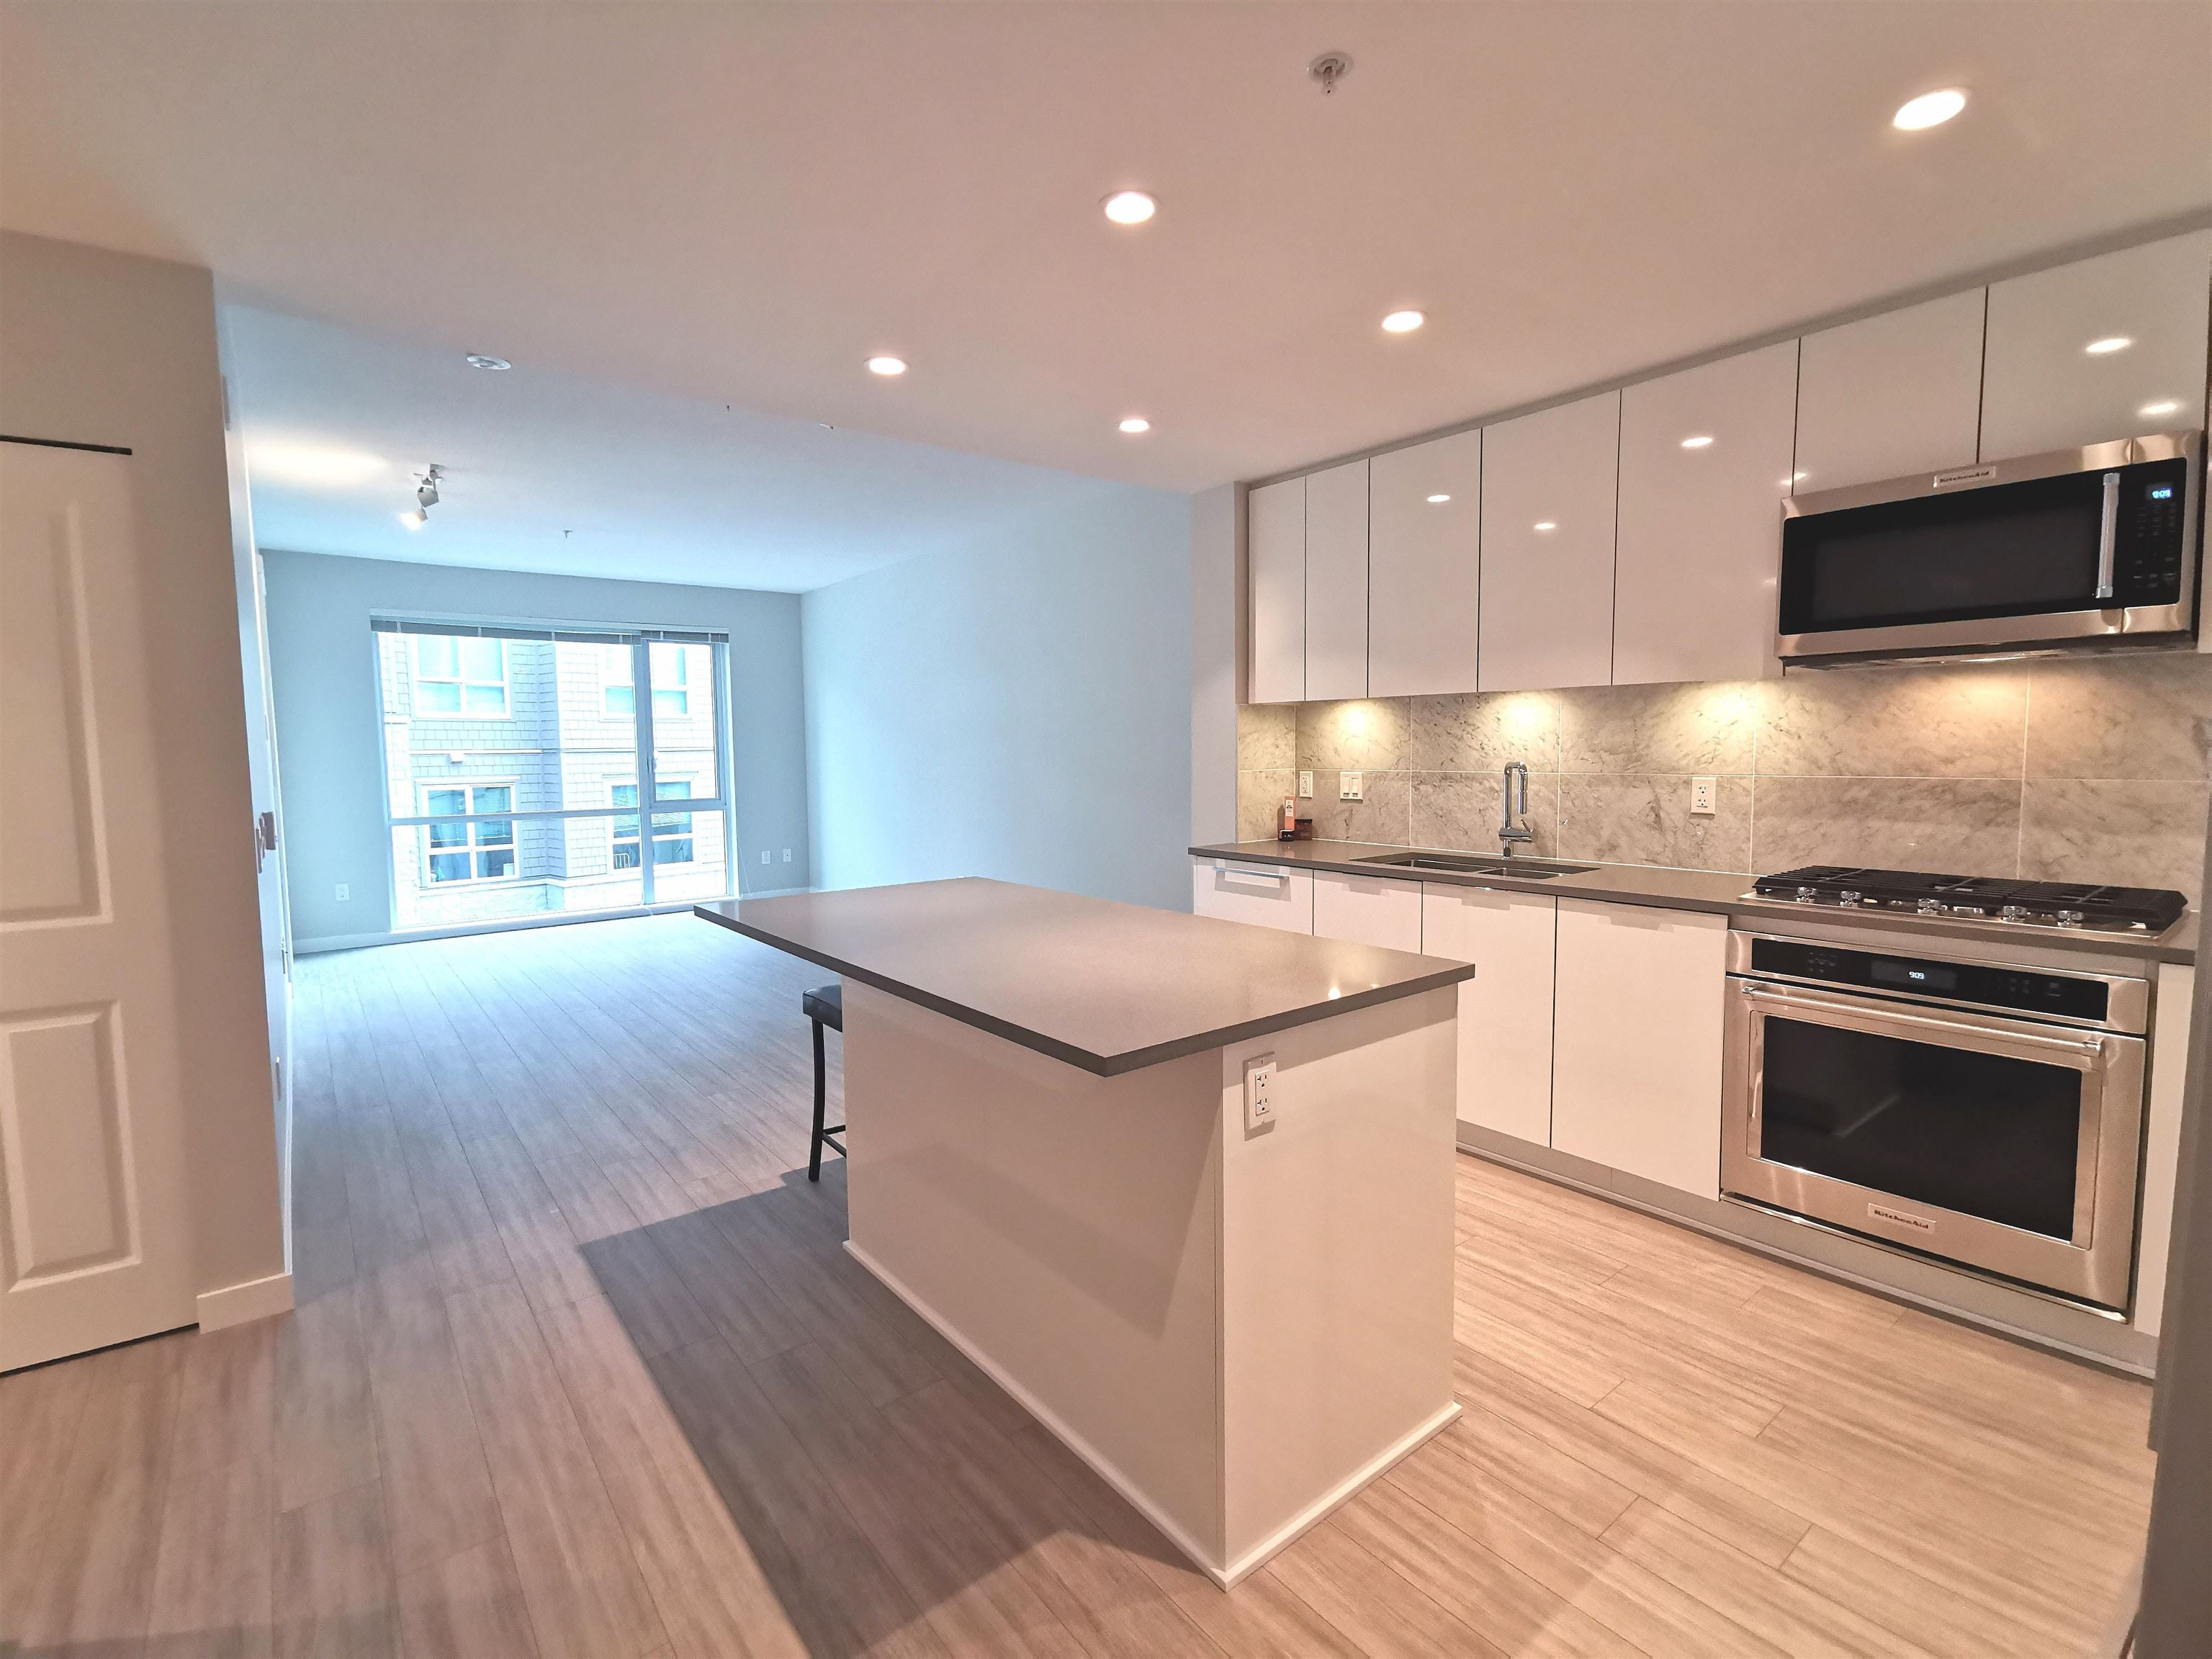 307 2651 LIBRARY LANE - Lynn Valley Apartment/Condo for sale, 2 Bedrooms (R2623451) - #14